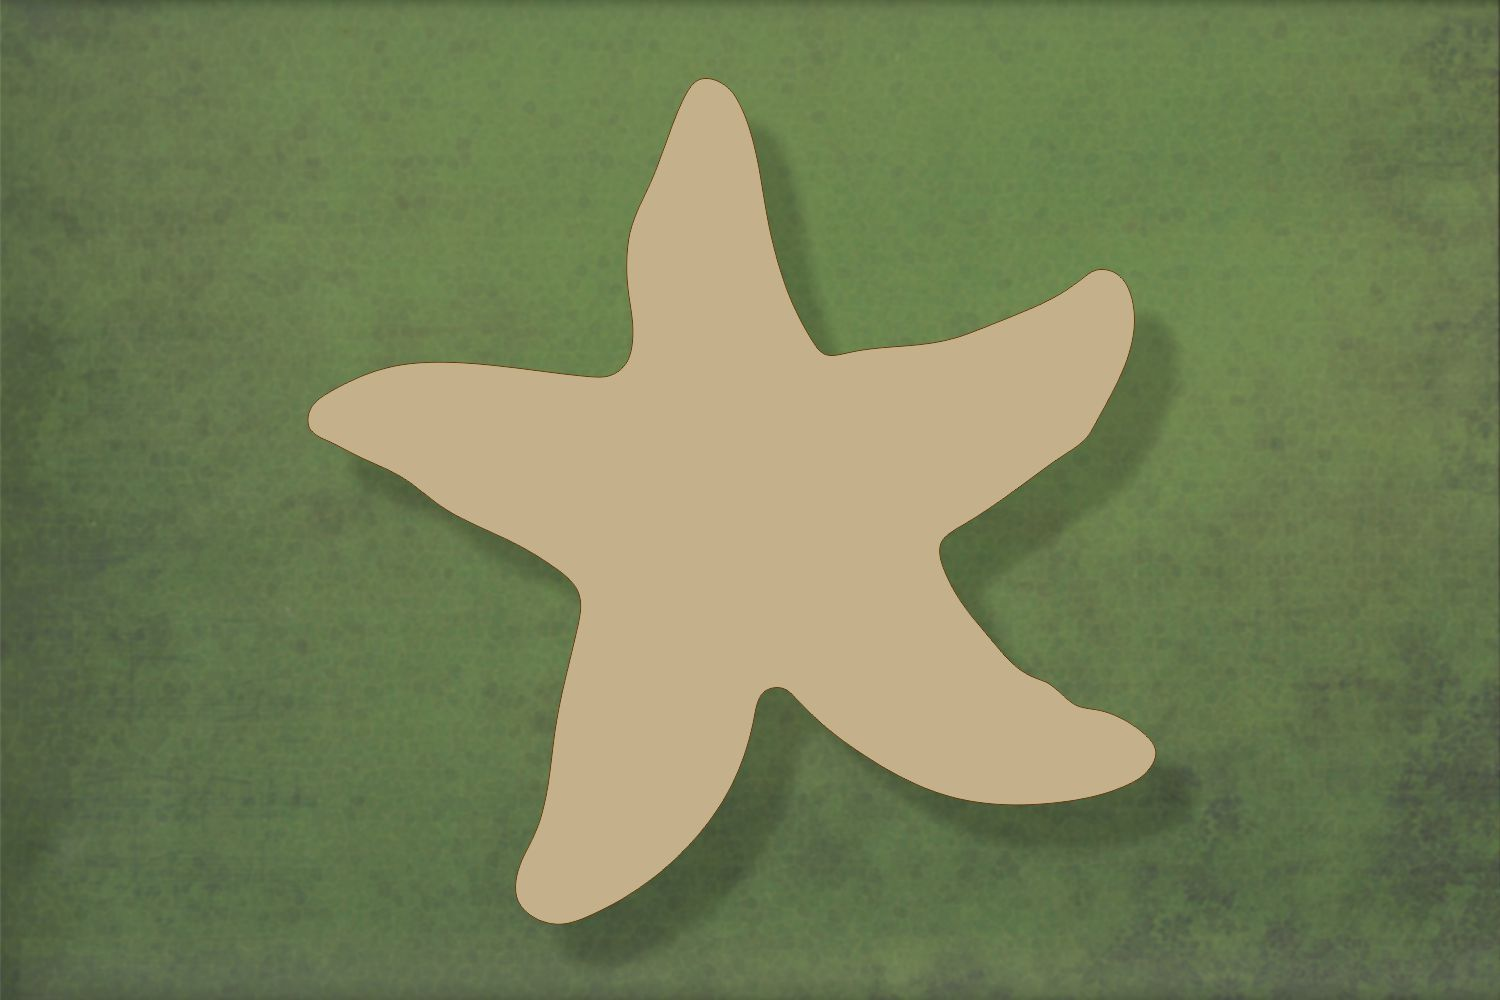 Laser cut, blank wooden Starfish shape for craft